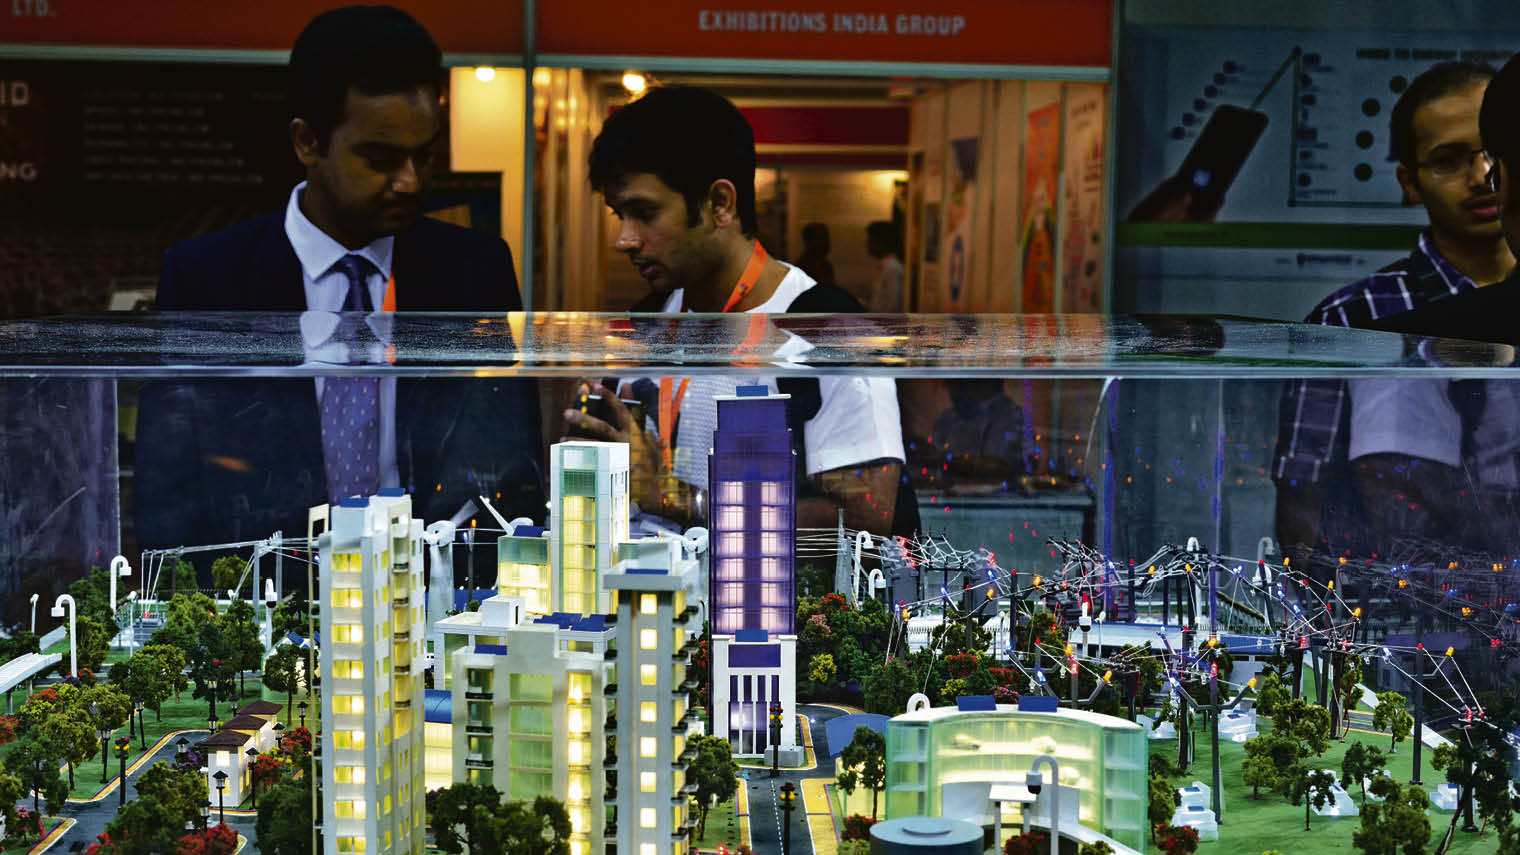 Proposals on display at the Smart Cities India 2015 Exhibition in New Delhi